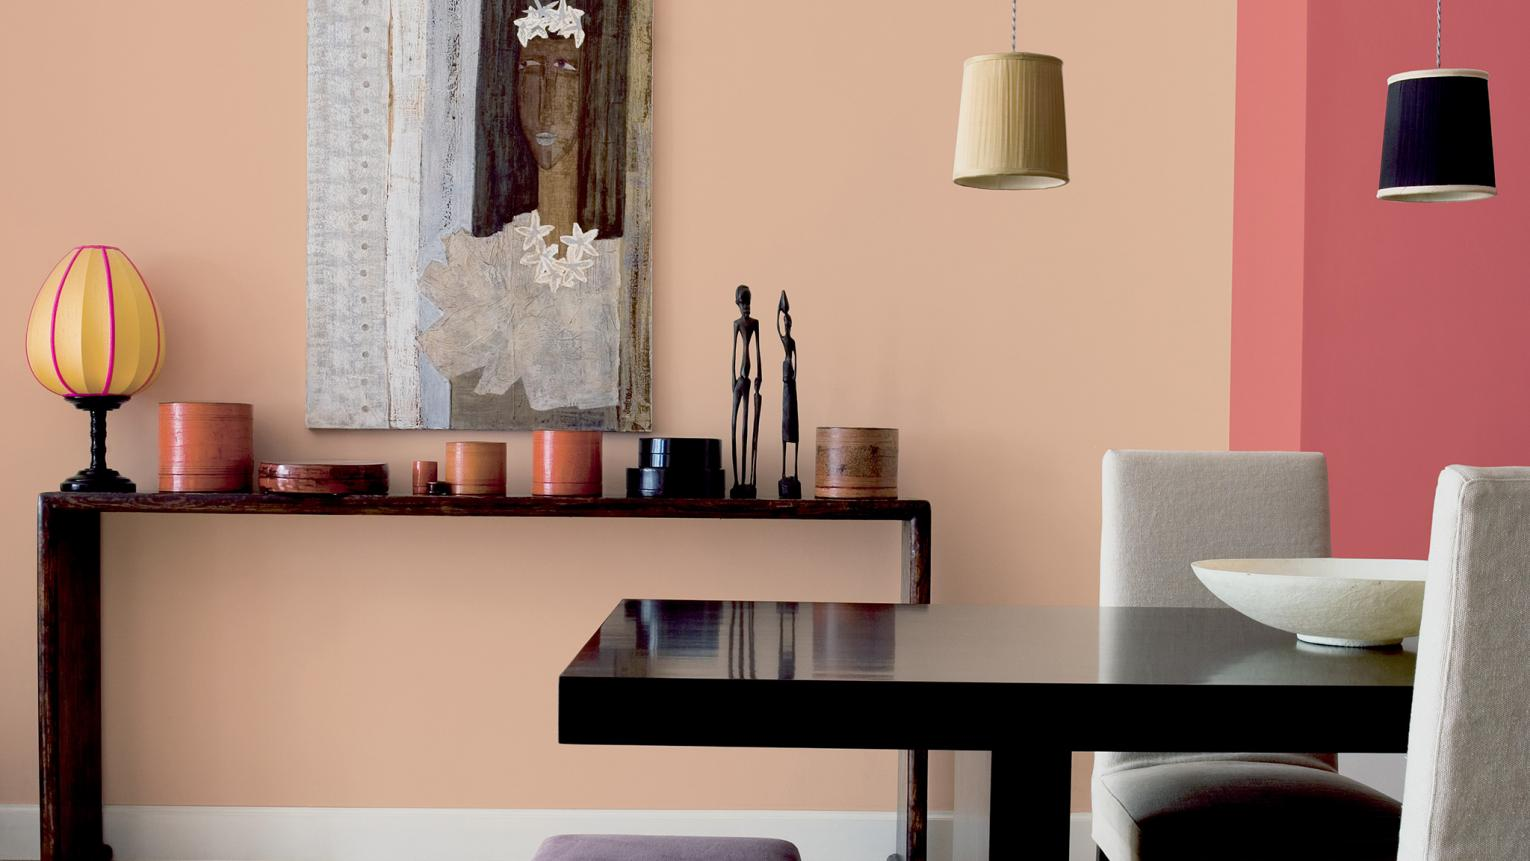 Getting ready to decorate? Before you start, read our top ten ways to choose a colour palette.